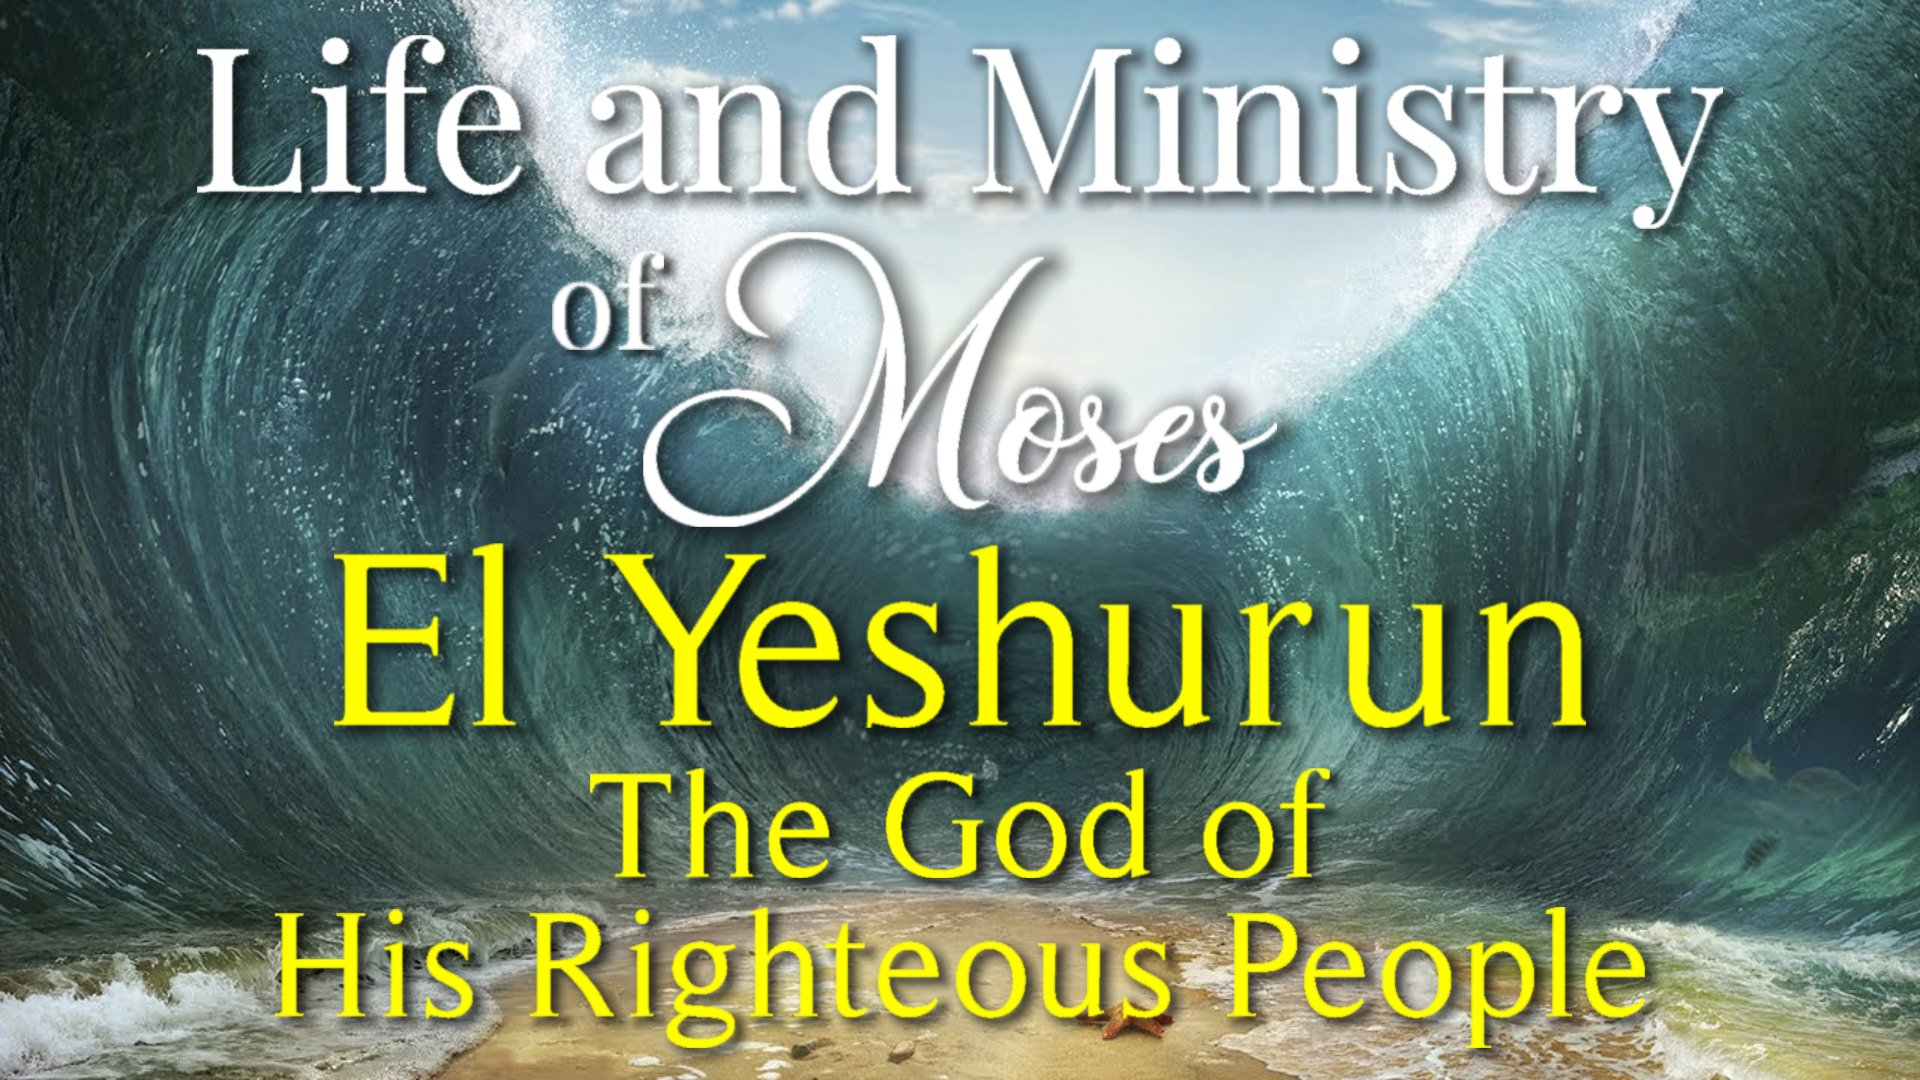 52 El Yeshurun, The God of His Righteous People